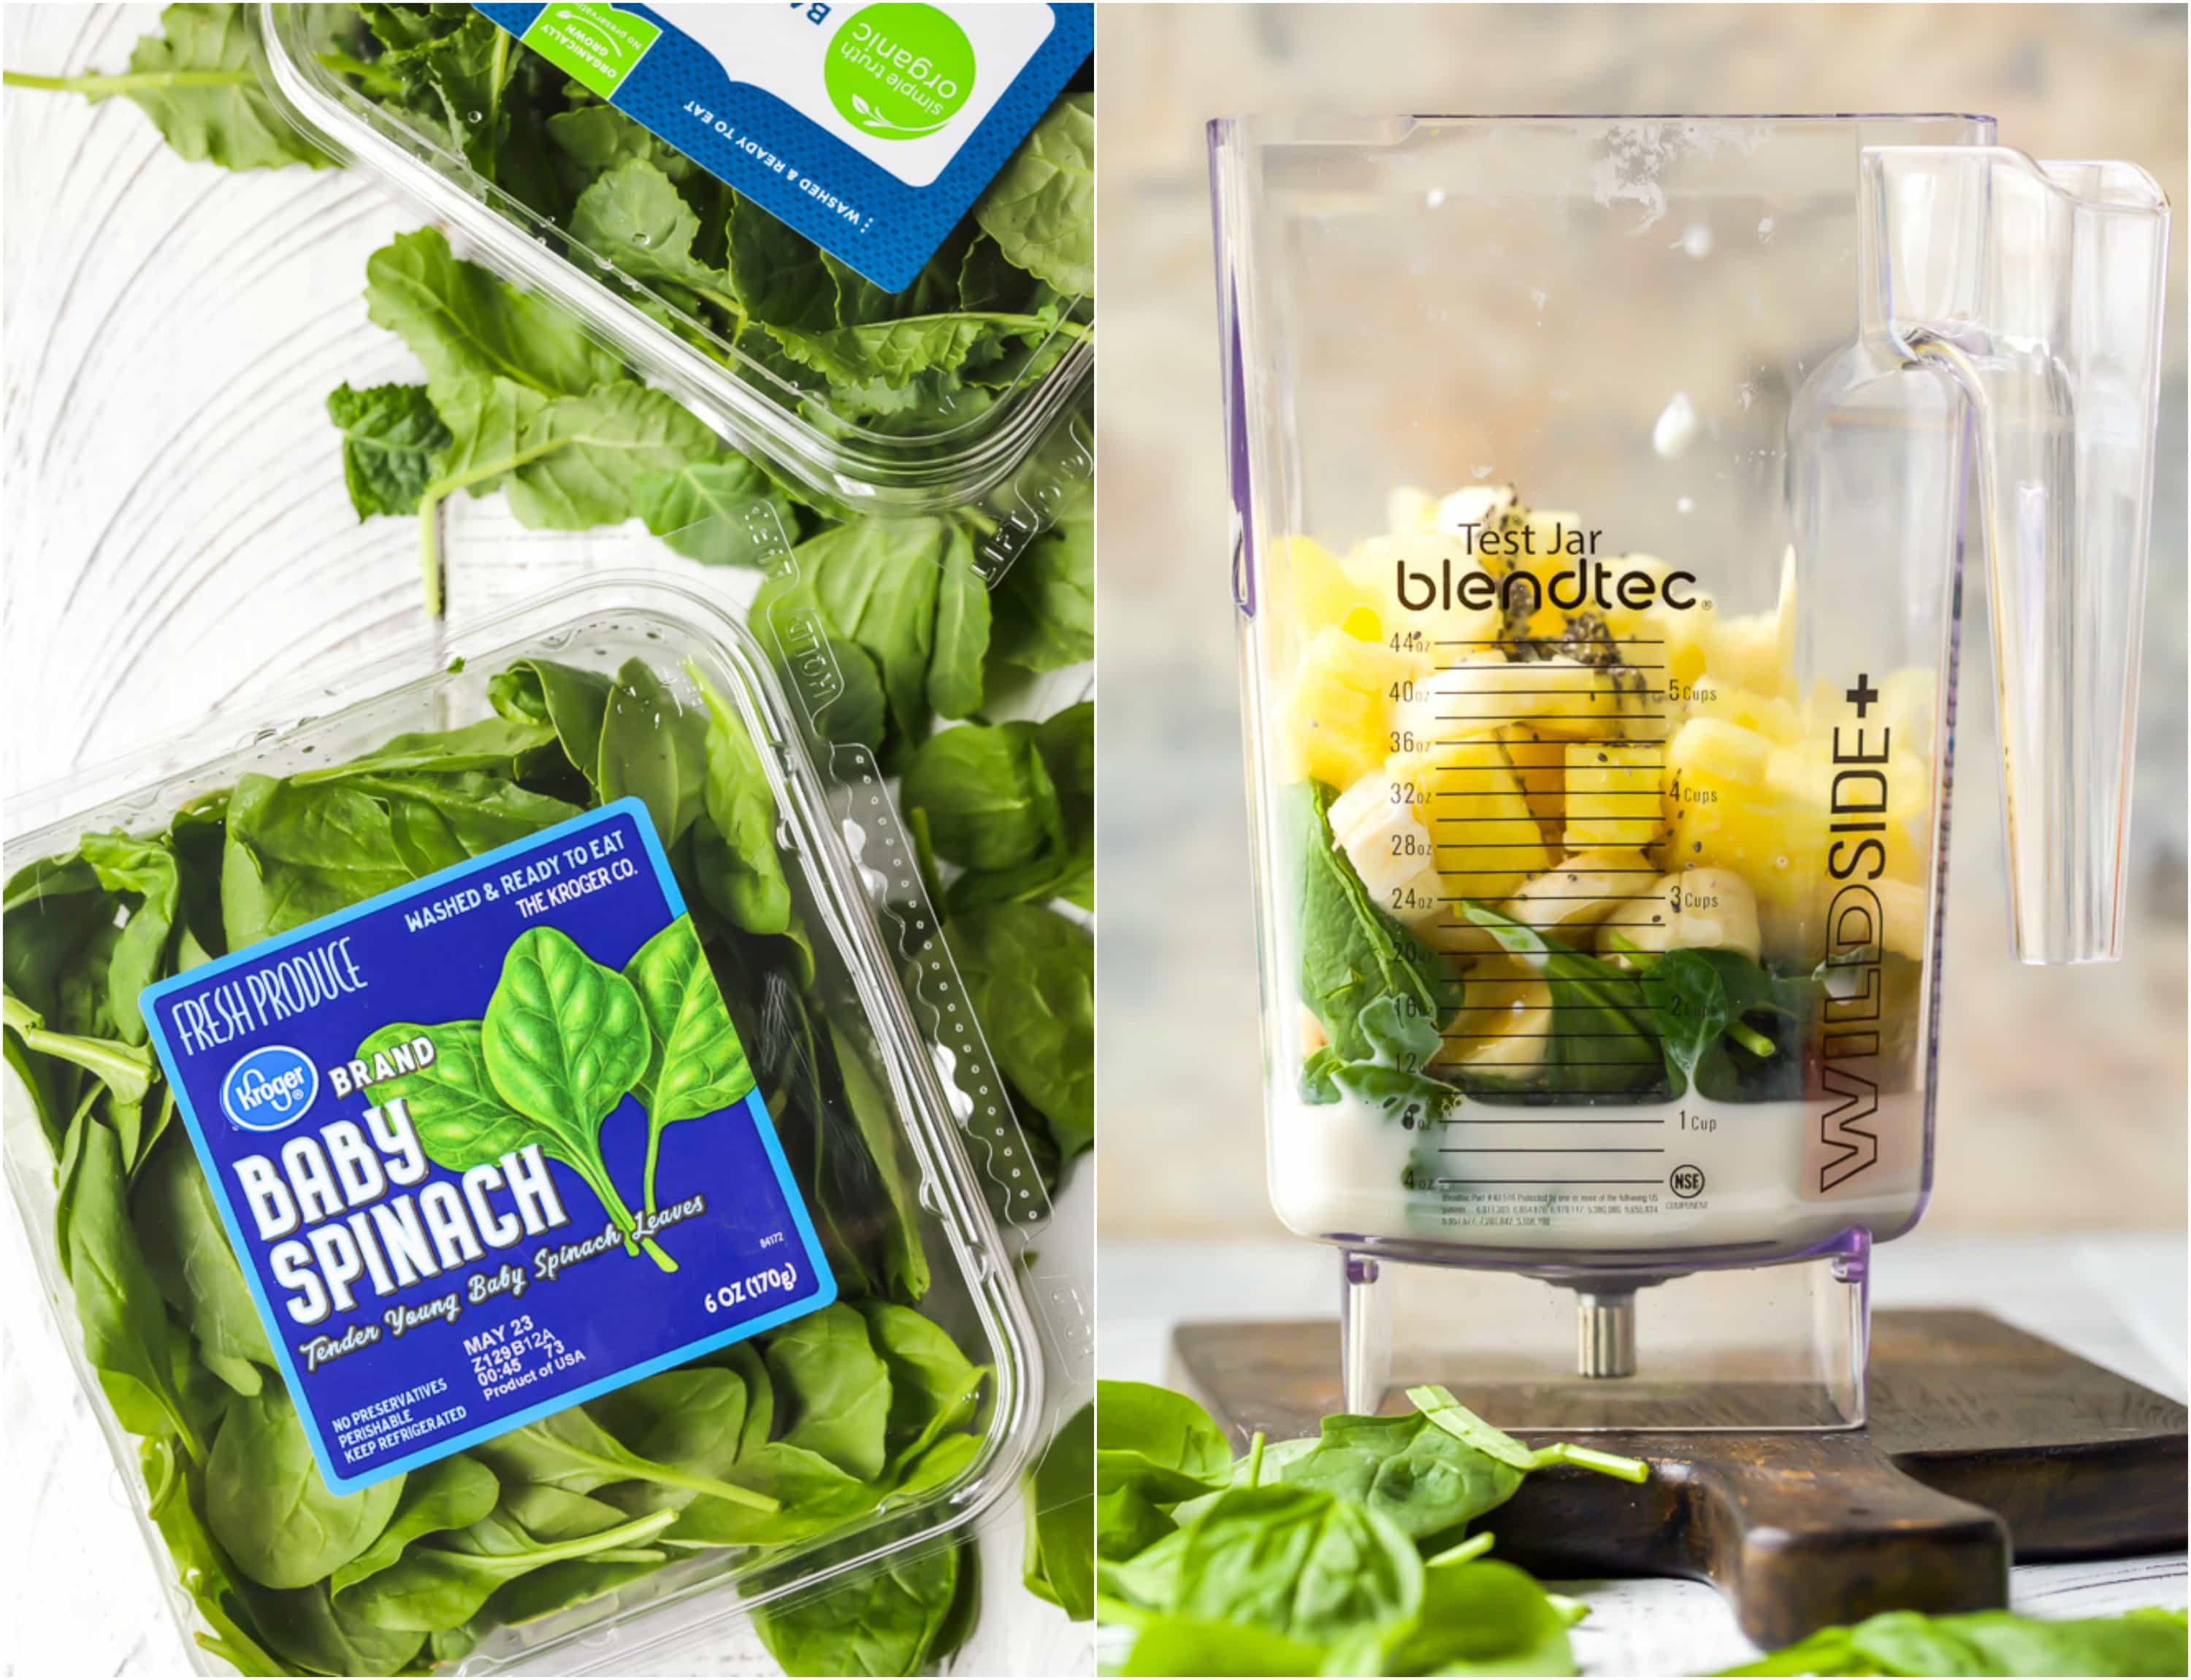 containers of baby spinach and a blender with smoothie ingredients before blending